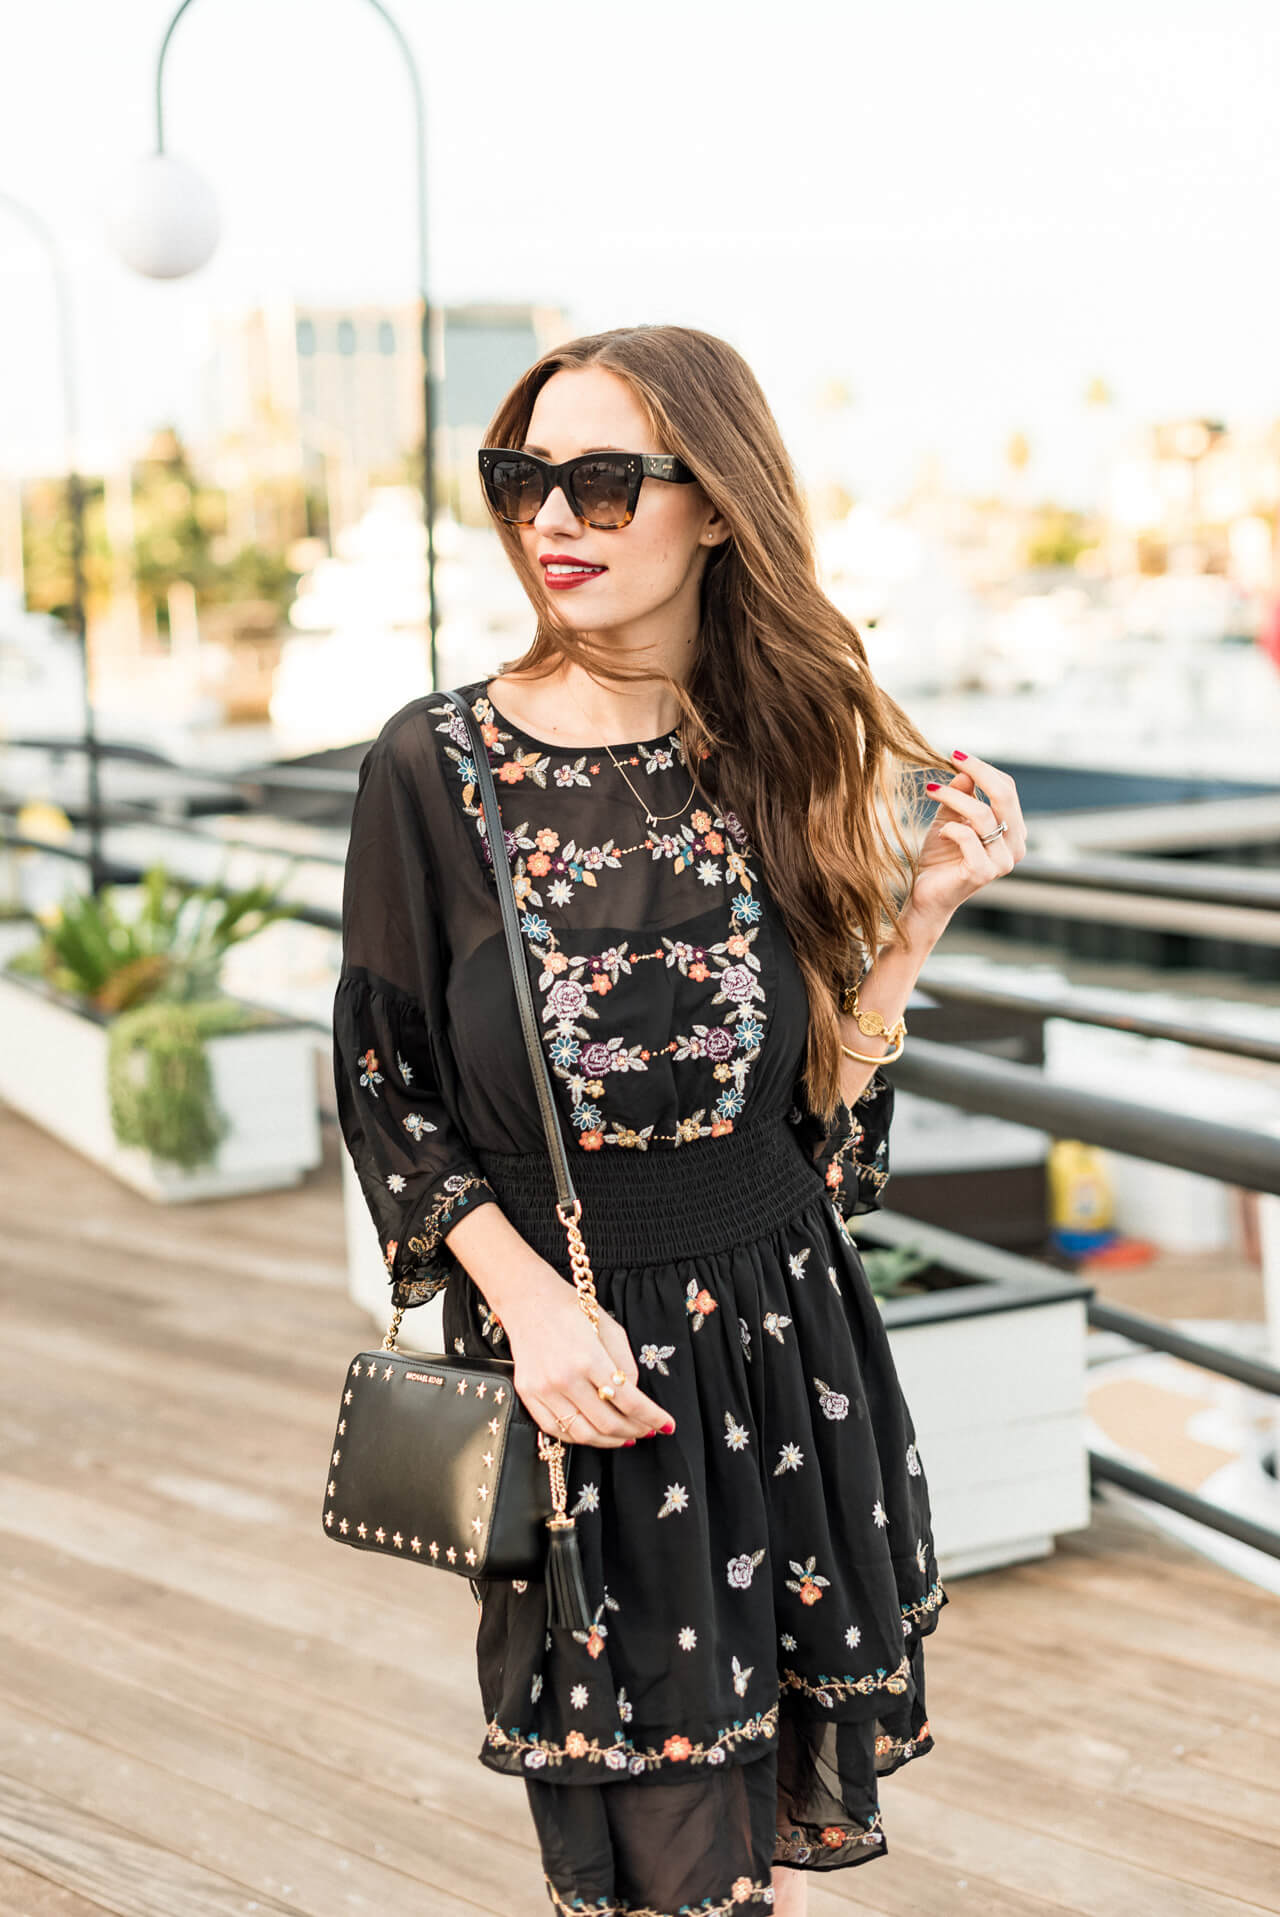 styling this gorgeous boho dress for fall + 10 other fall dresses under $100! - M Loves M @marmar